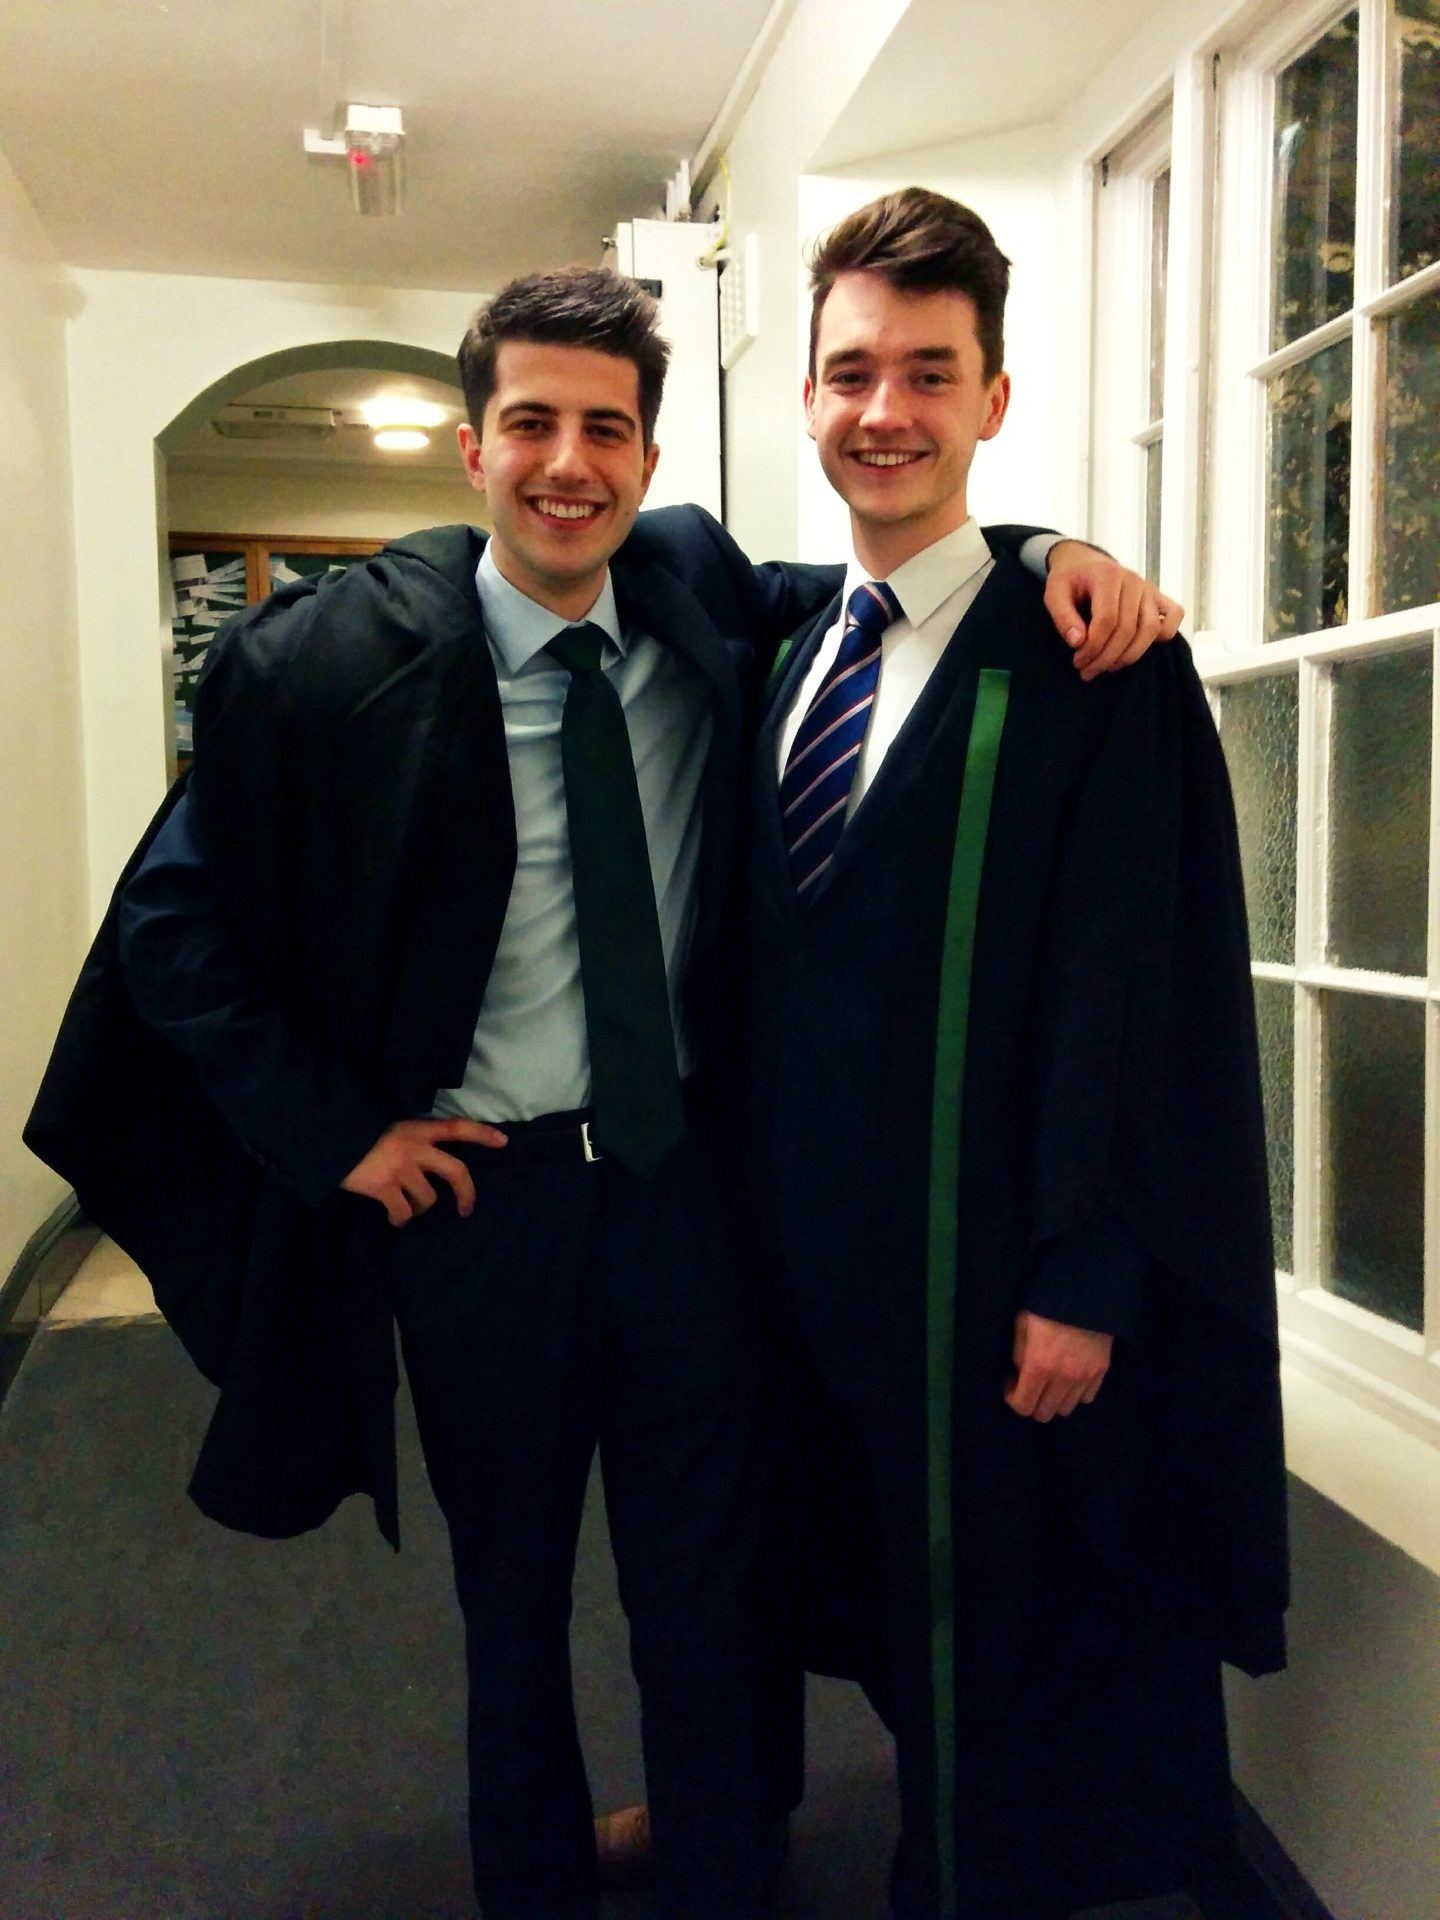 The new JCR Treasurer, DAN Bateson, and Senior Man, Jack Angers